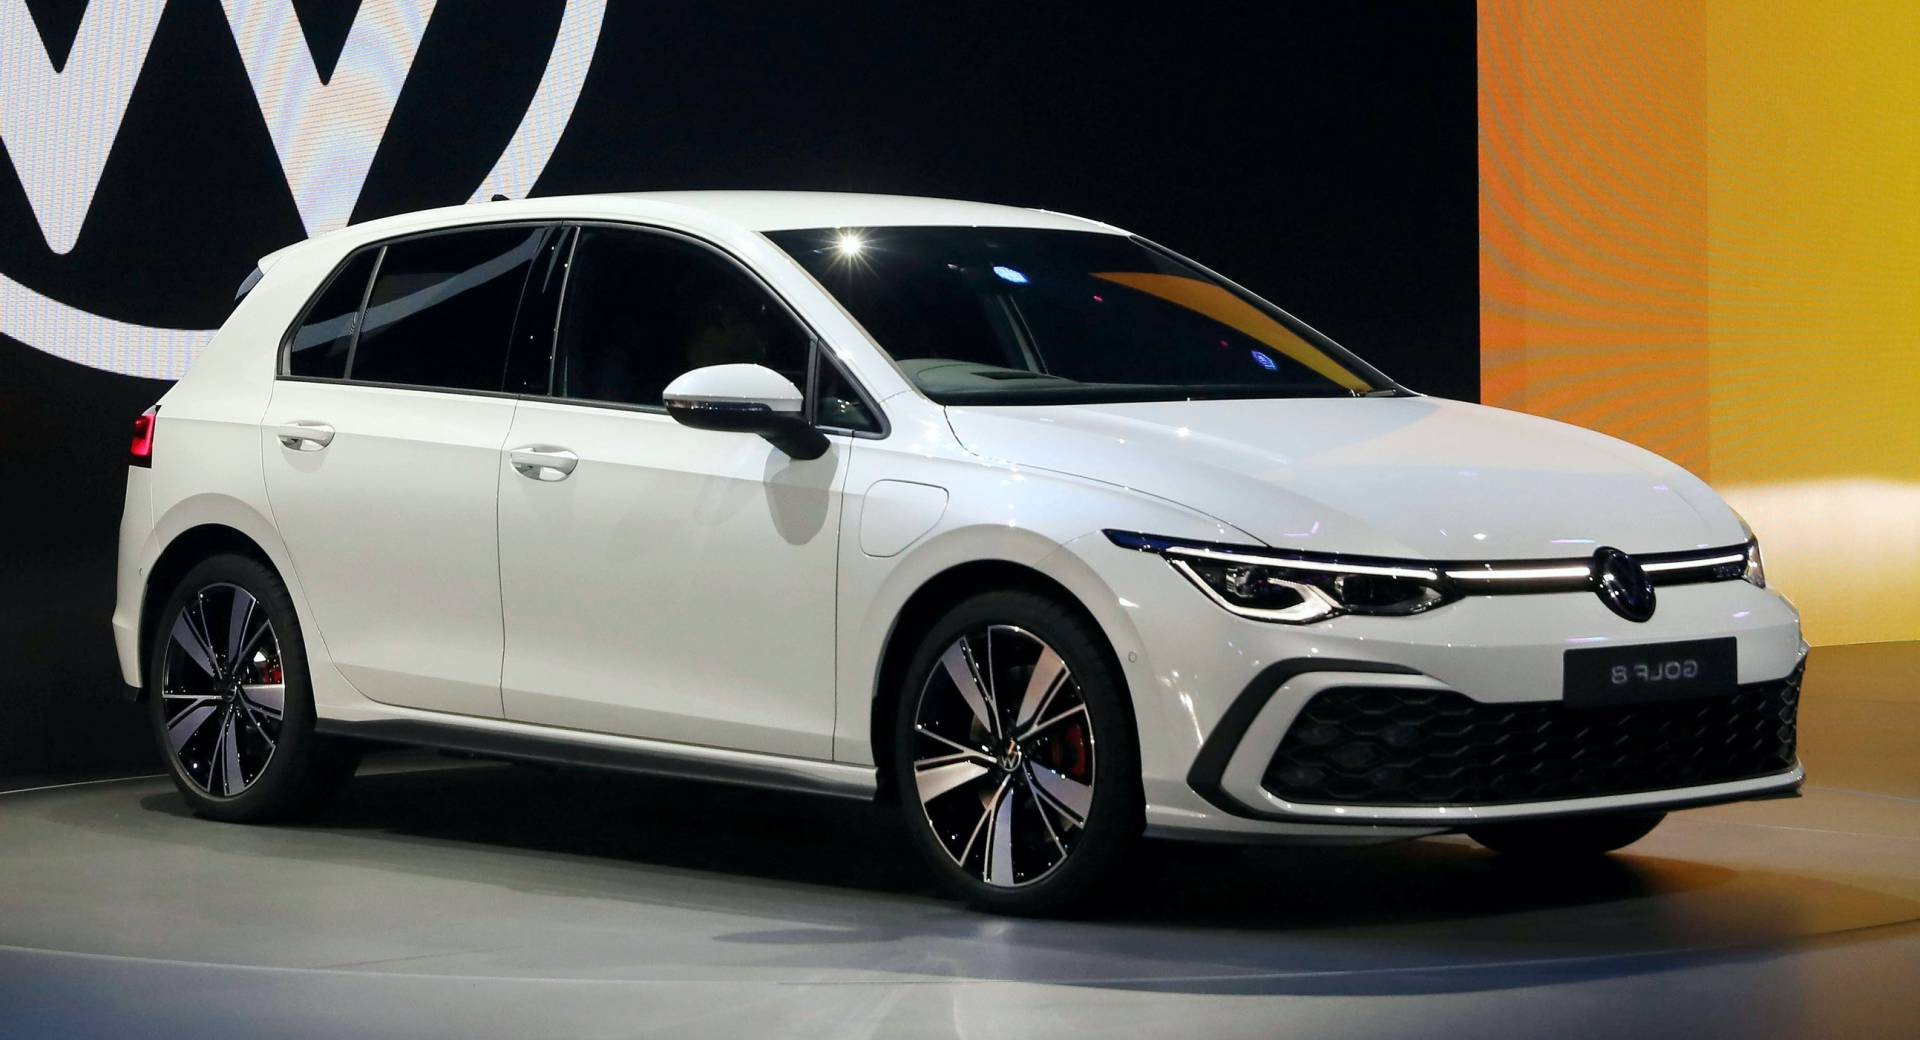 2021 vw golf canada release date, interior, review